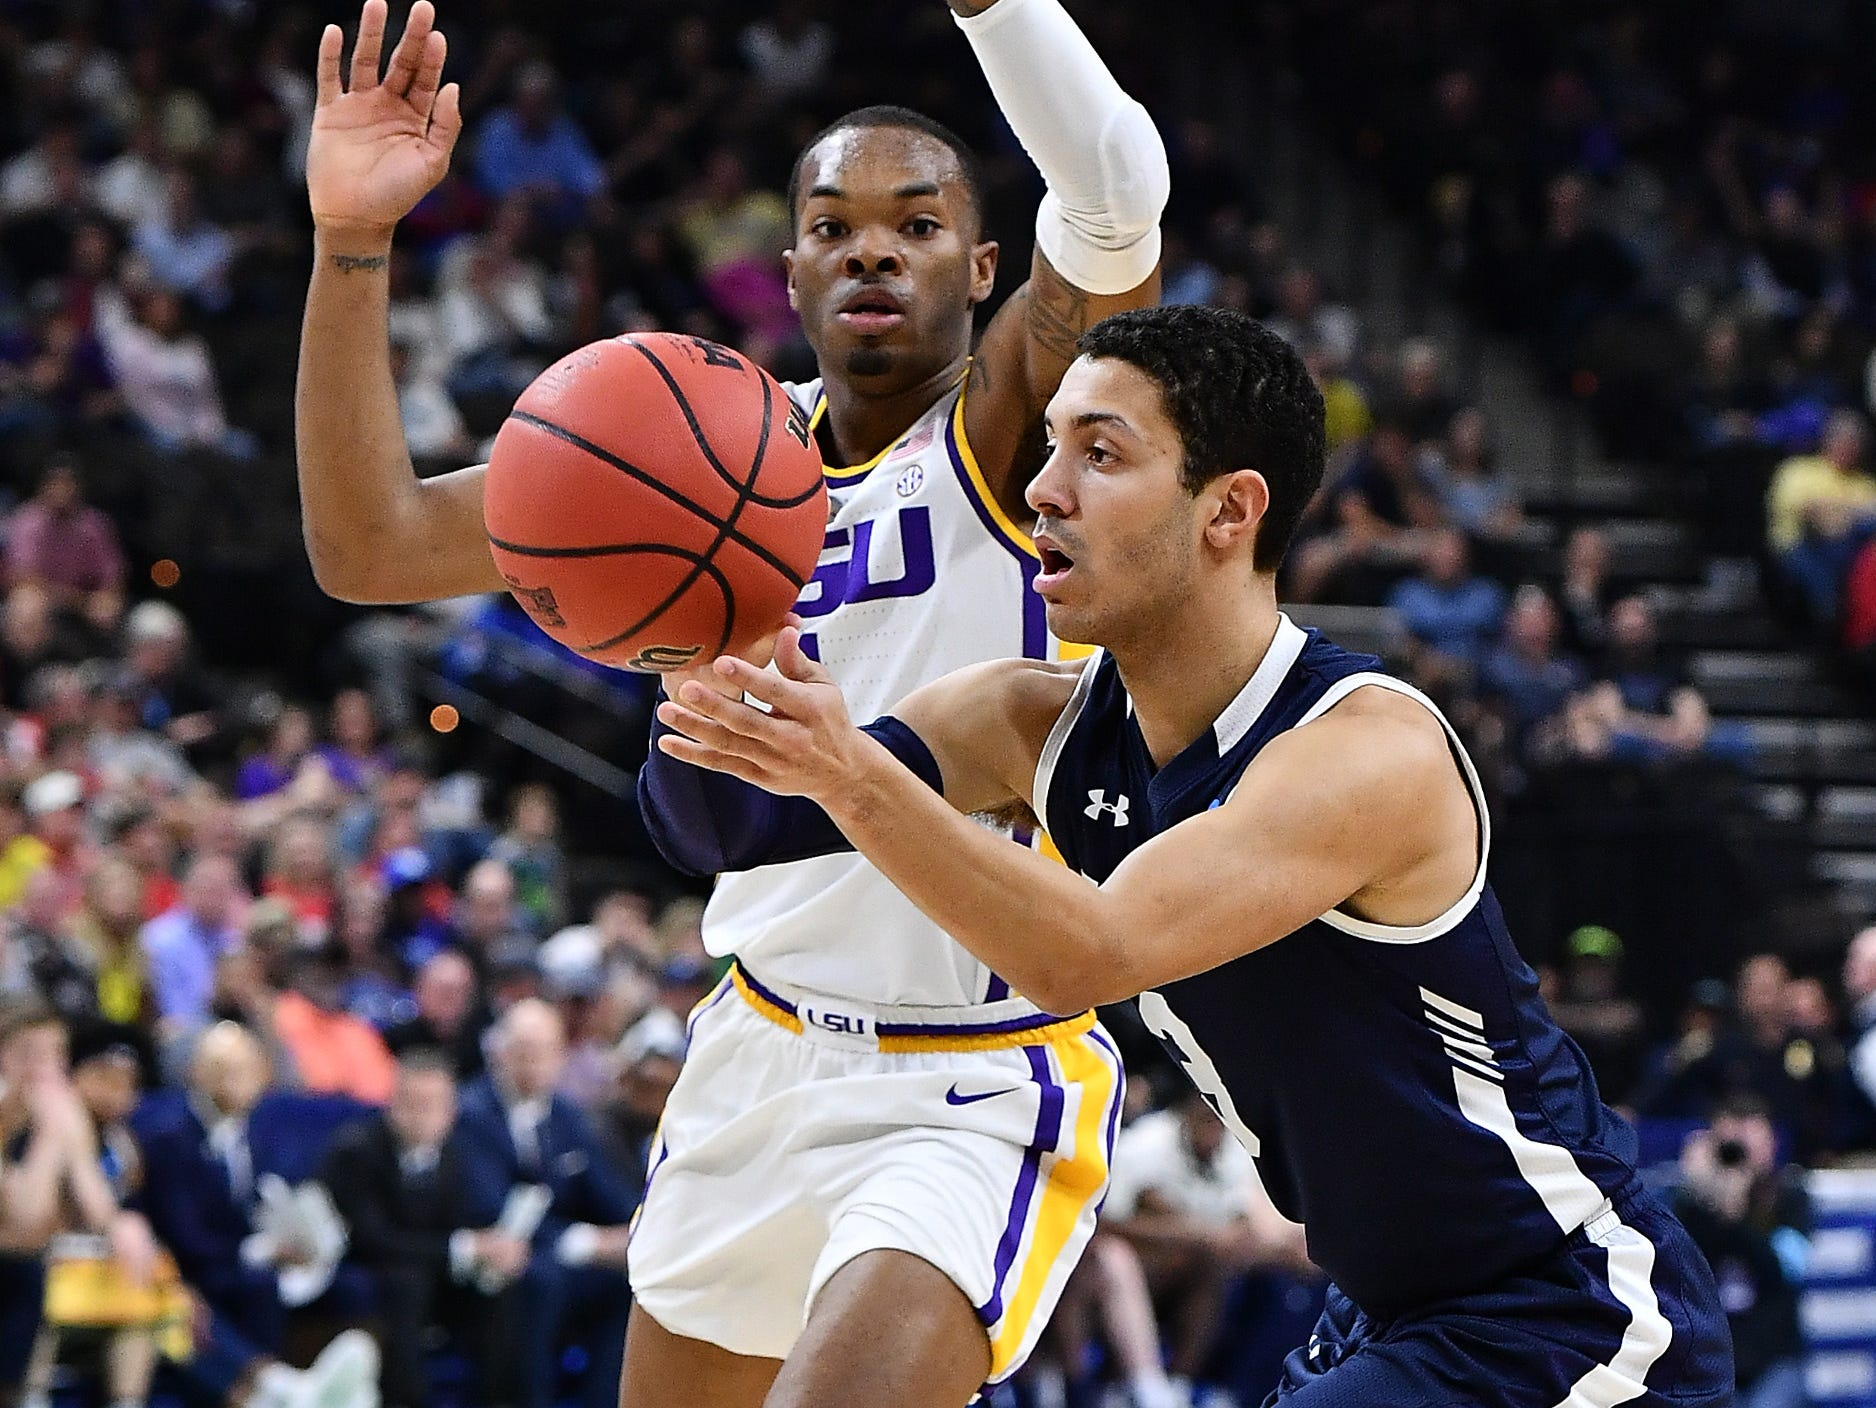 Mar 21, 2019; Jacksonville, FL, USA; Yale Bulldogs guard Alex Copeland (3) passes the ball against LSU Tigers guard Javonte Smart (1) during the first half in the first round of the 2019 NCAA Tournament at Jacksonville Veterans Memorial Arena. Mandatory Credit: John David Mercer-USA TODAY Sports